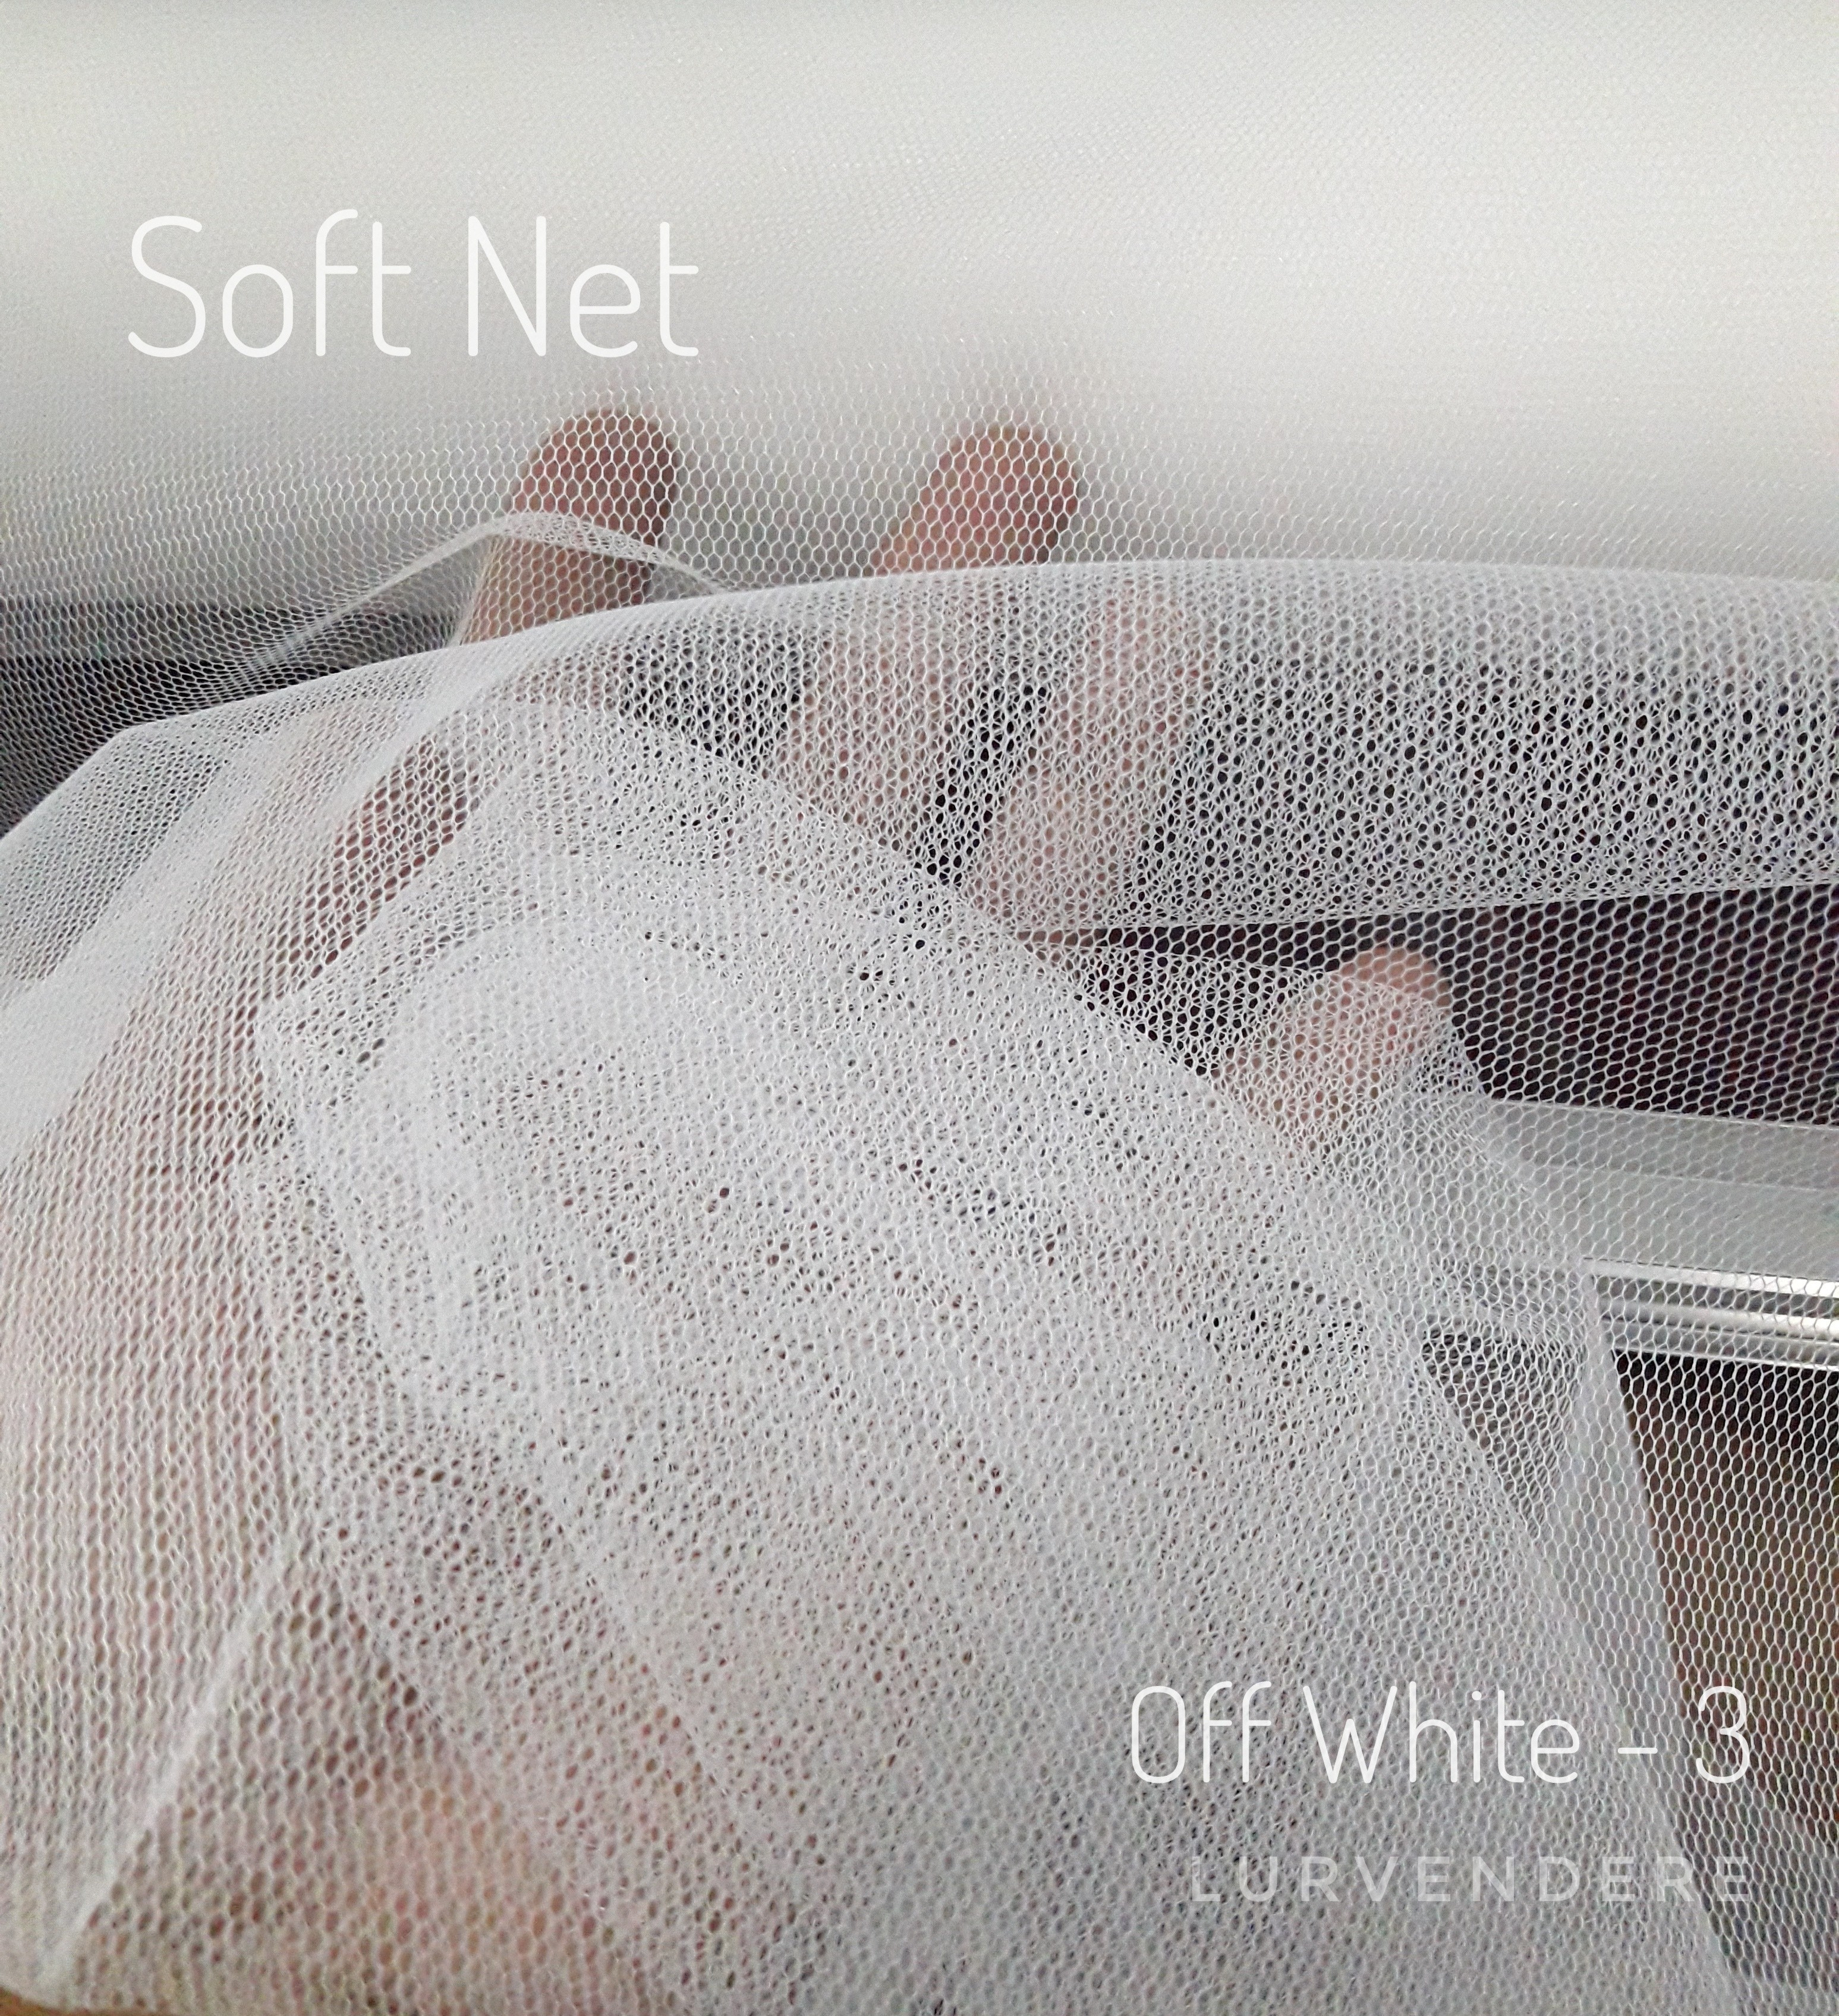 oft Net - Off white ( 3 )